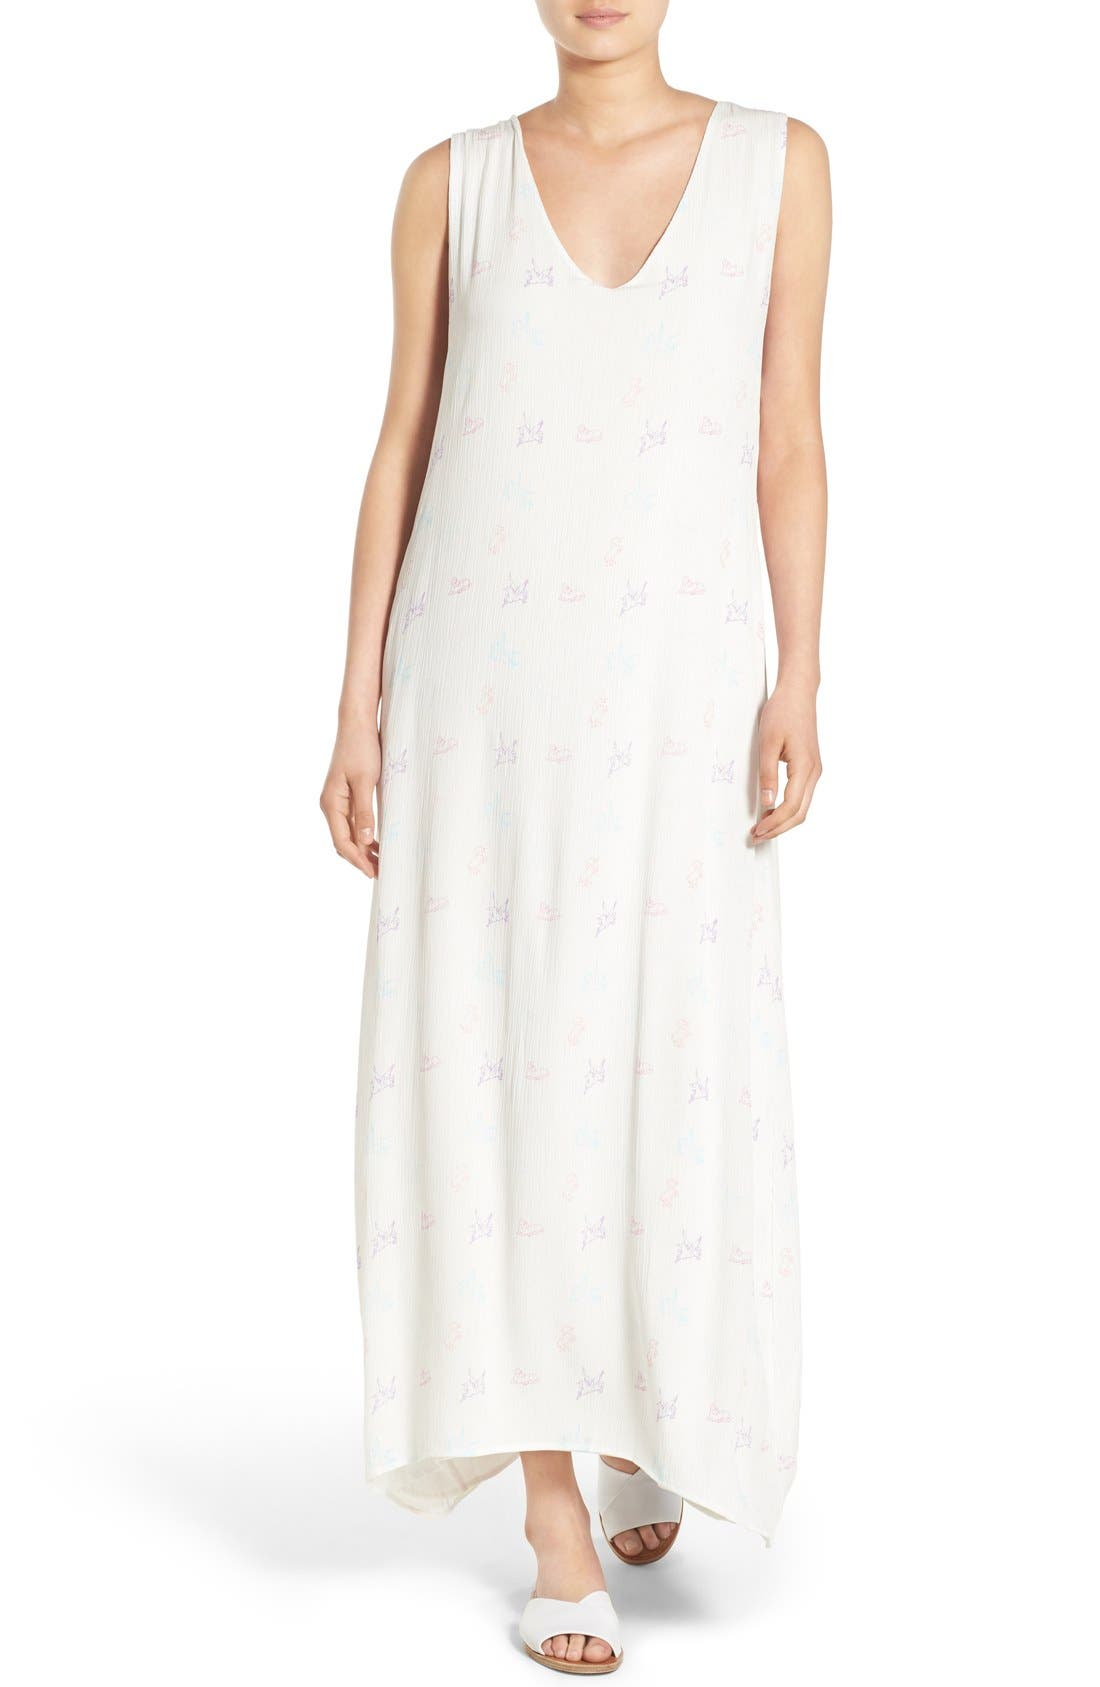 Alternate Image 1 Selected - Wildfox Unicorn Print Gauze Maxi Dress